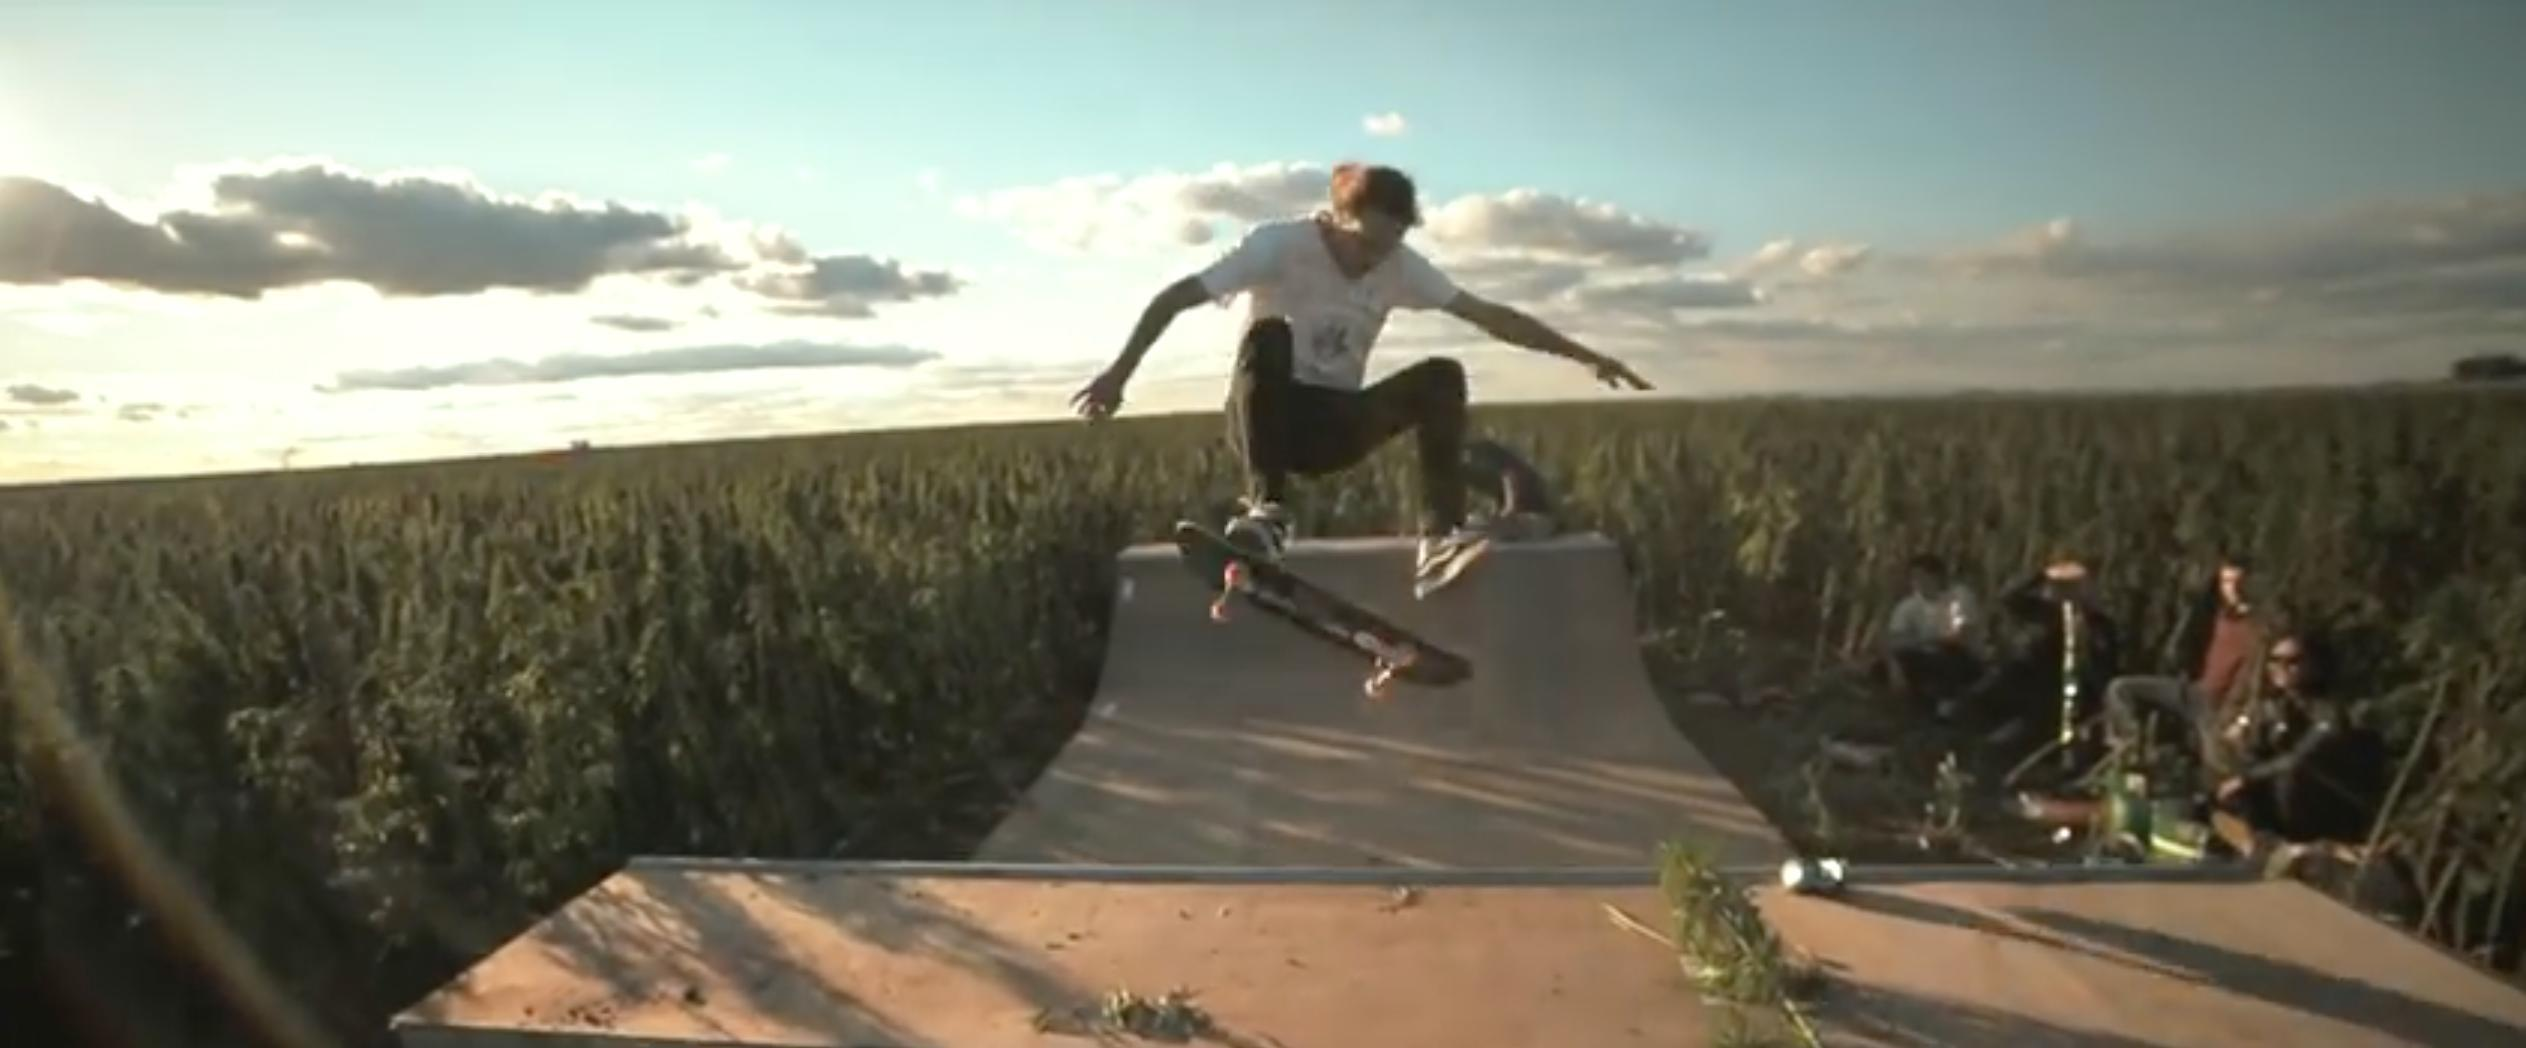 WATCH: These Guys Built A Half Pipe In The Middle Of A Sea Of Weed